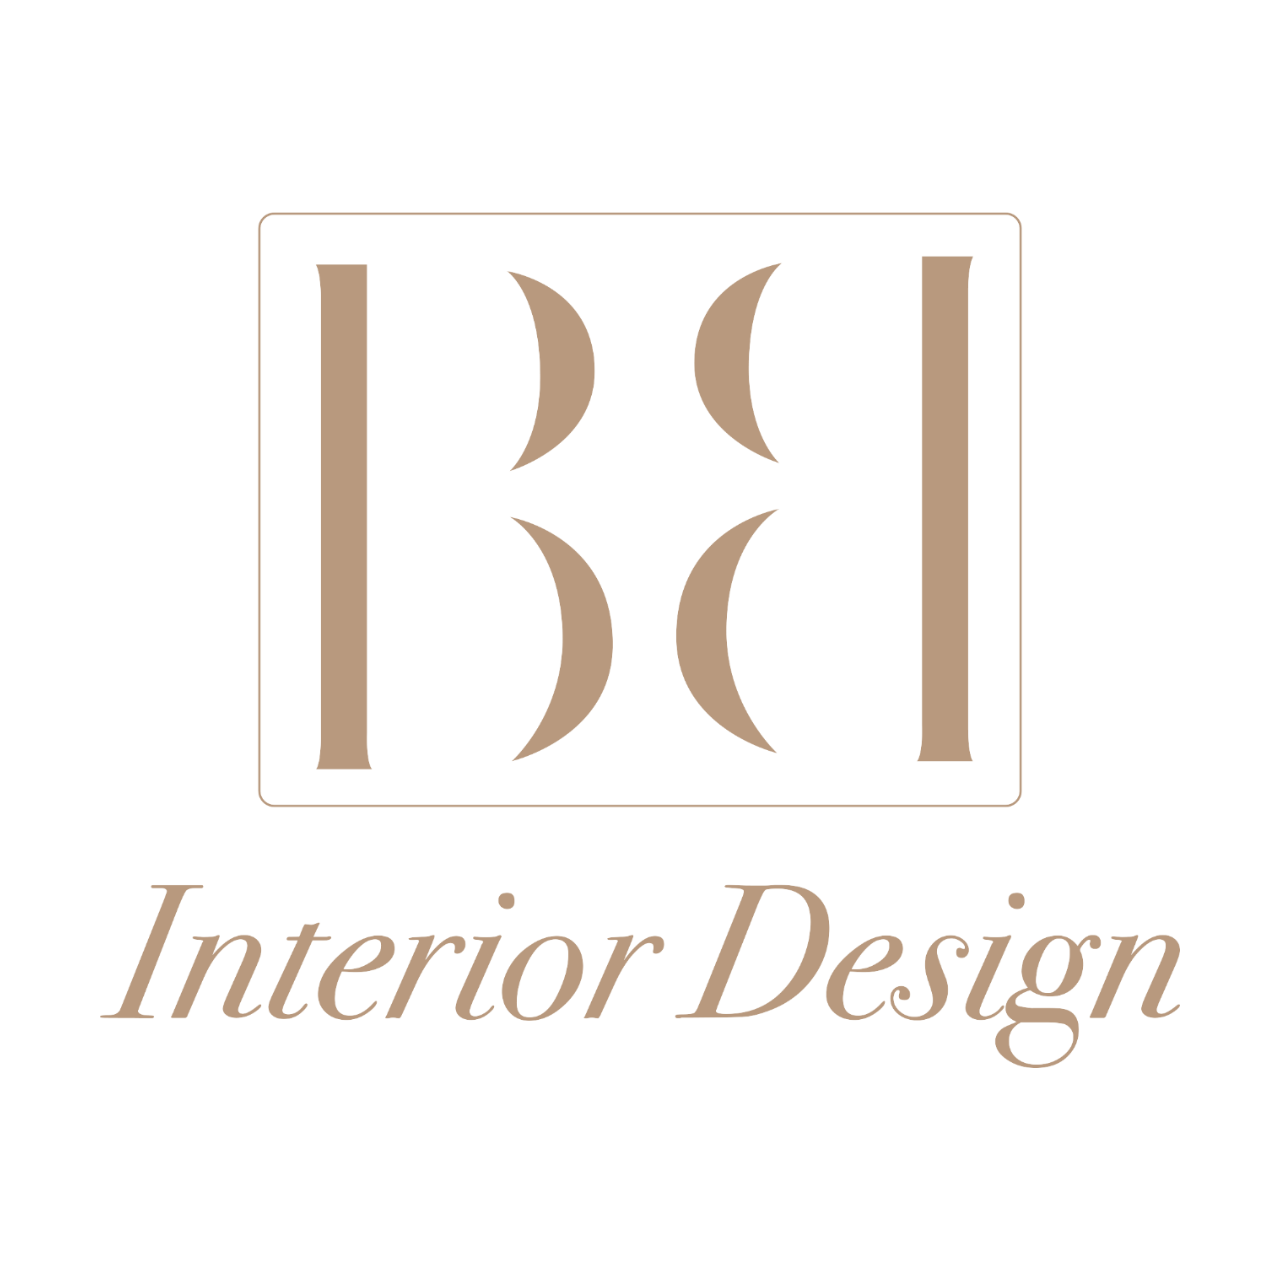 BB interior design